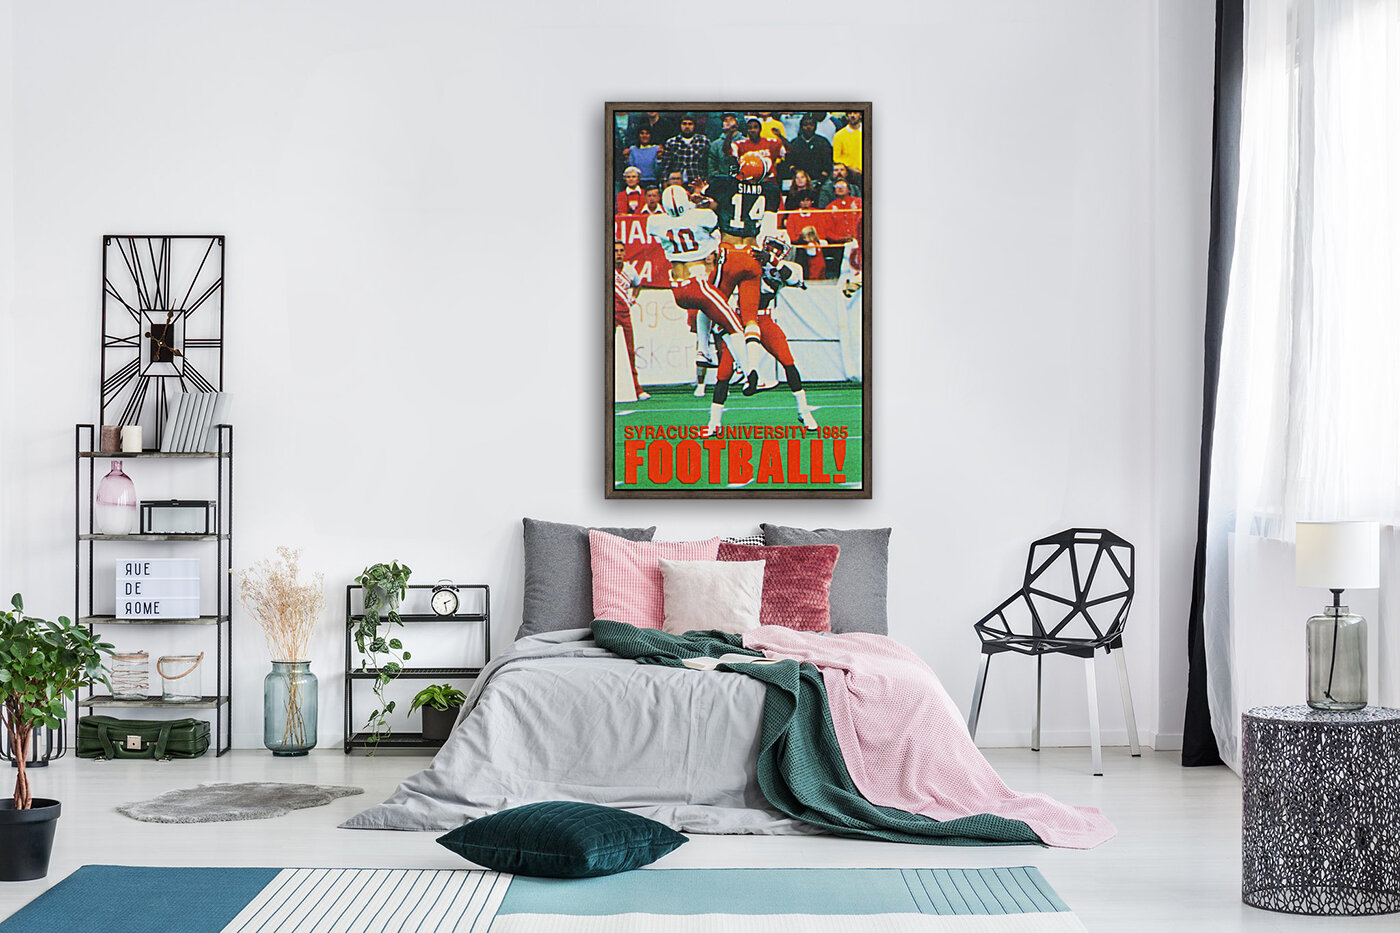 1985 Syracuse Orange Football Poster with Floating Frame